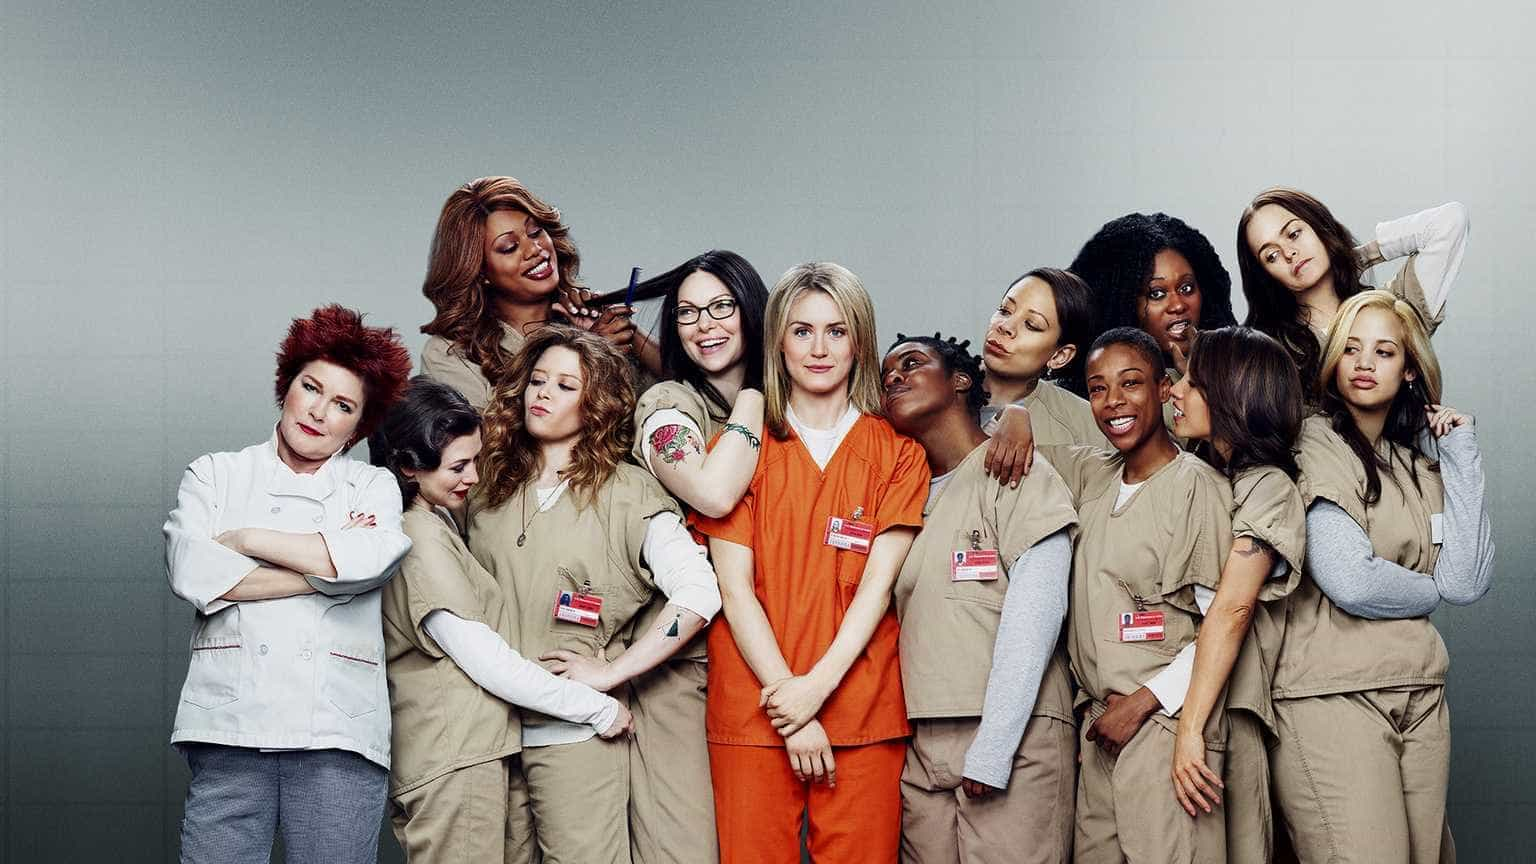 'Orange Is the New Black' volta à sua boa forma